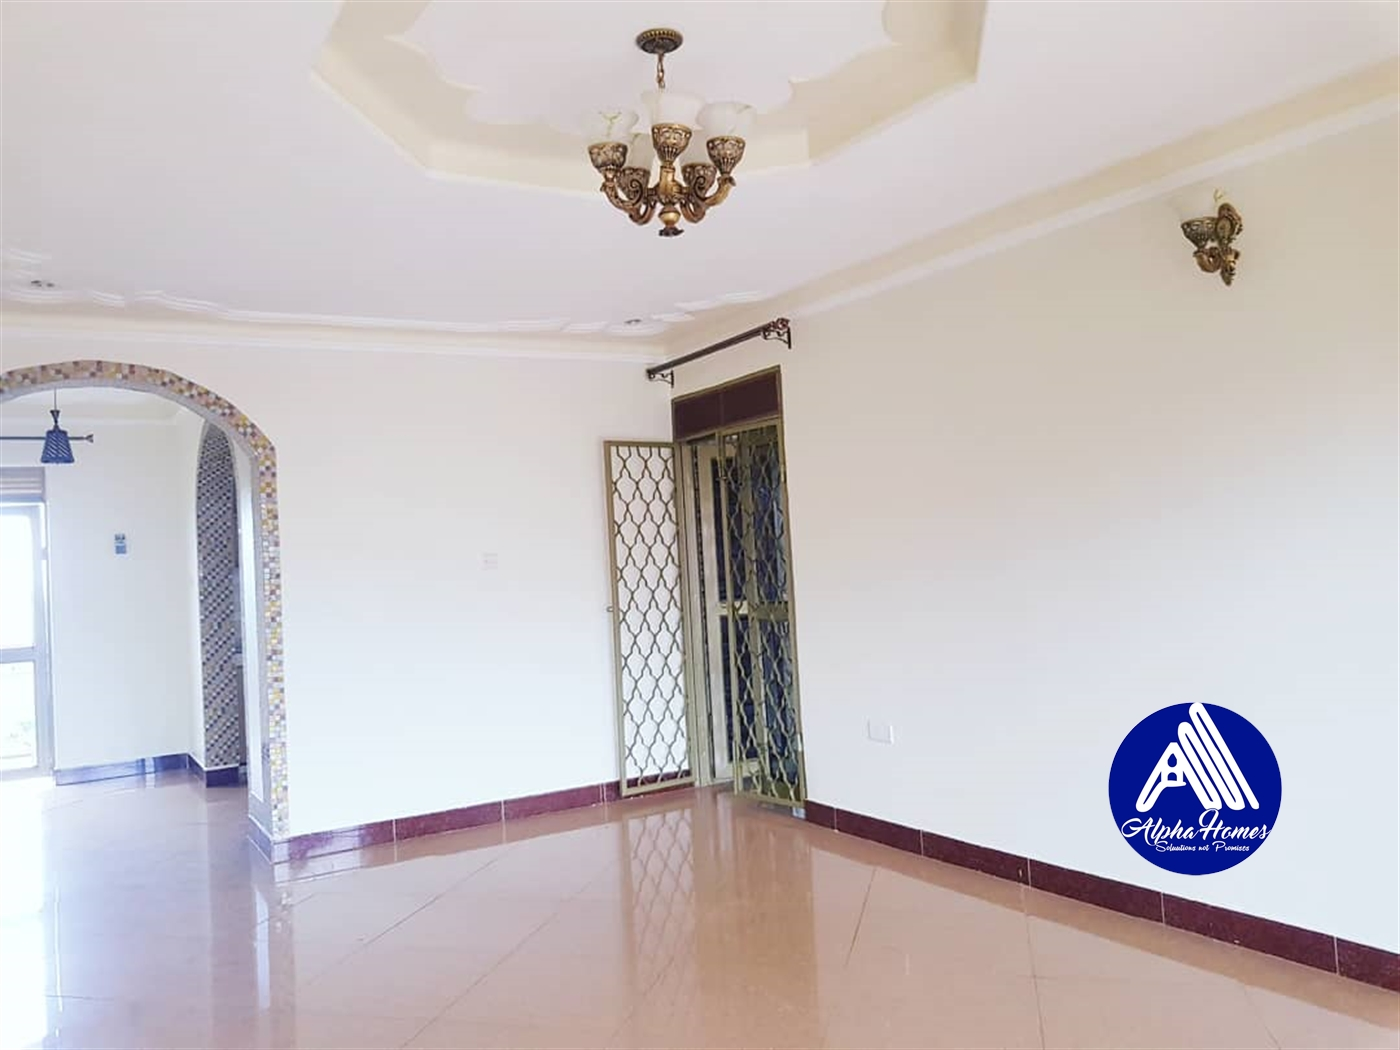 Apartment for rent in Lukuli Kampala